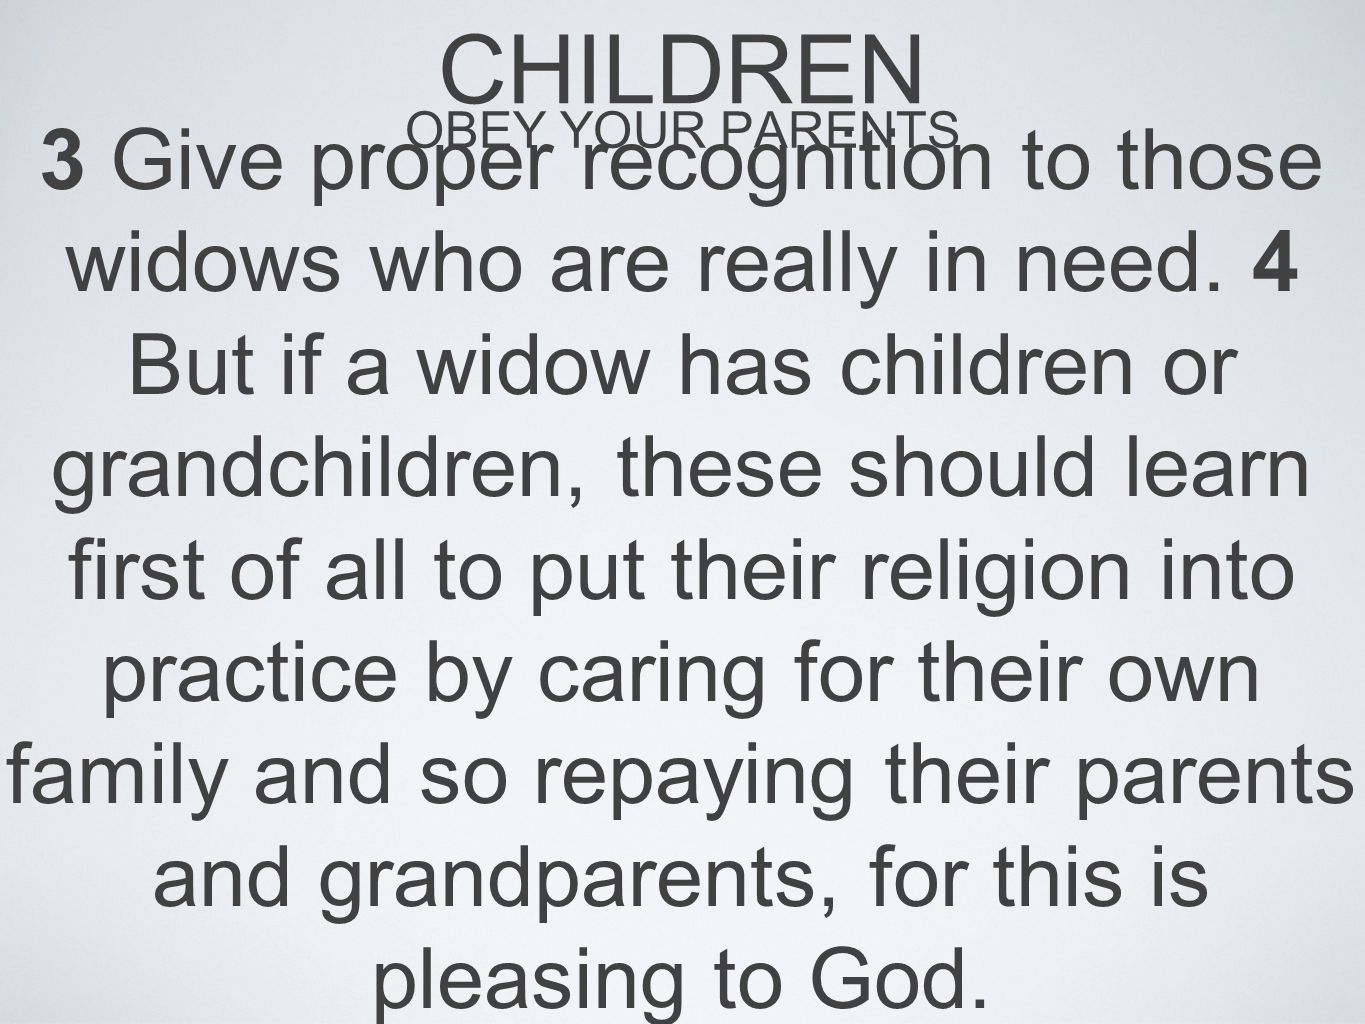 CHILDREN OBEY YOUR PARENTS 3 Give proper recognition to those widows who are really in need.